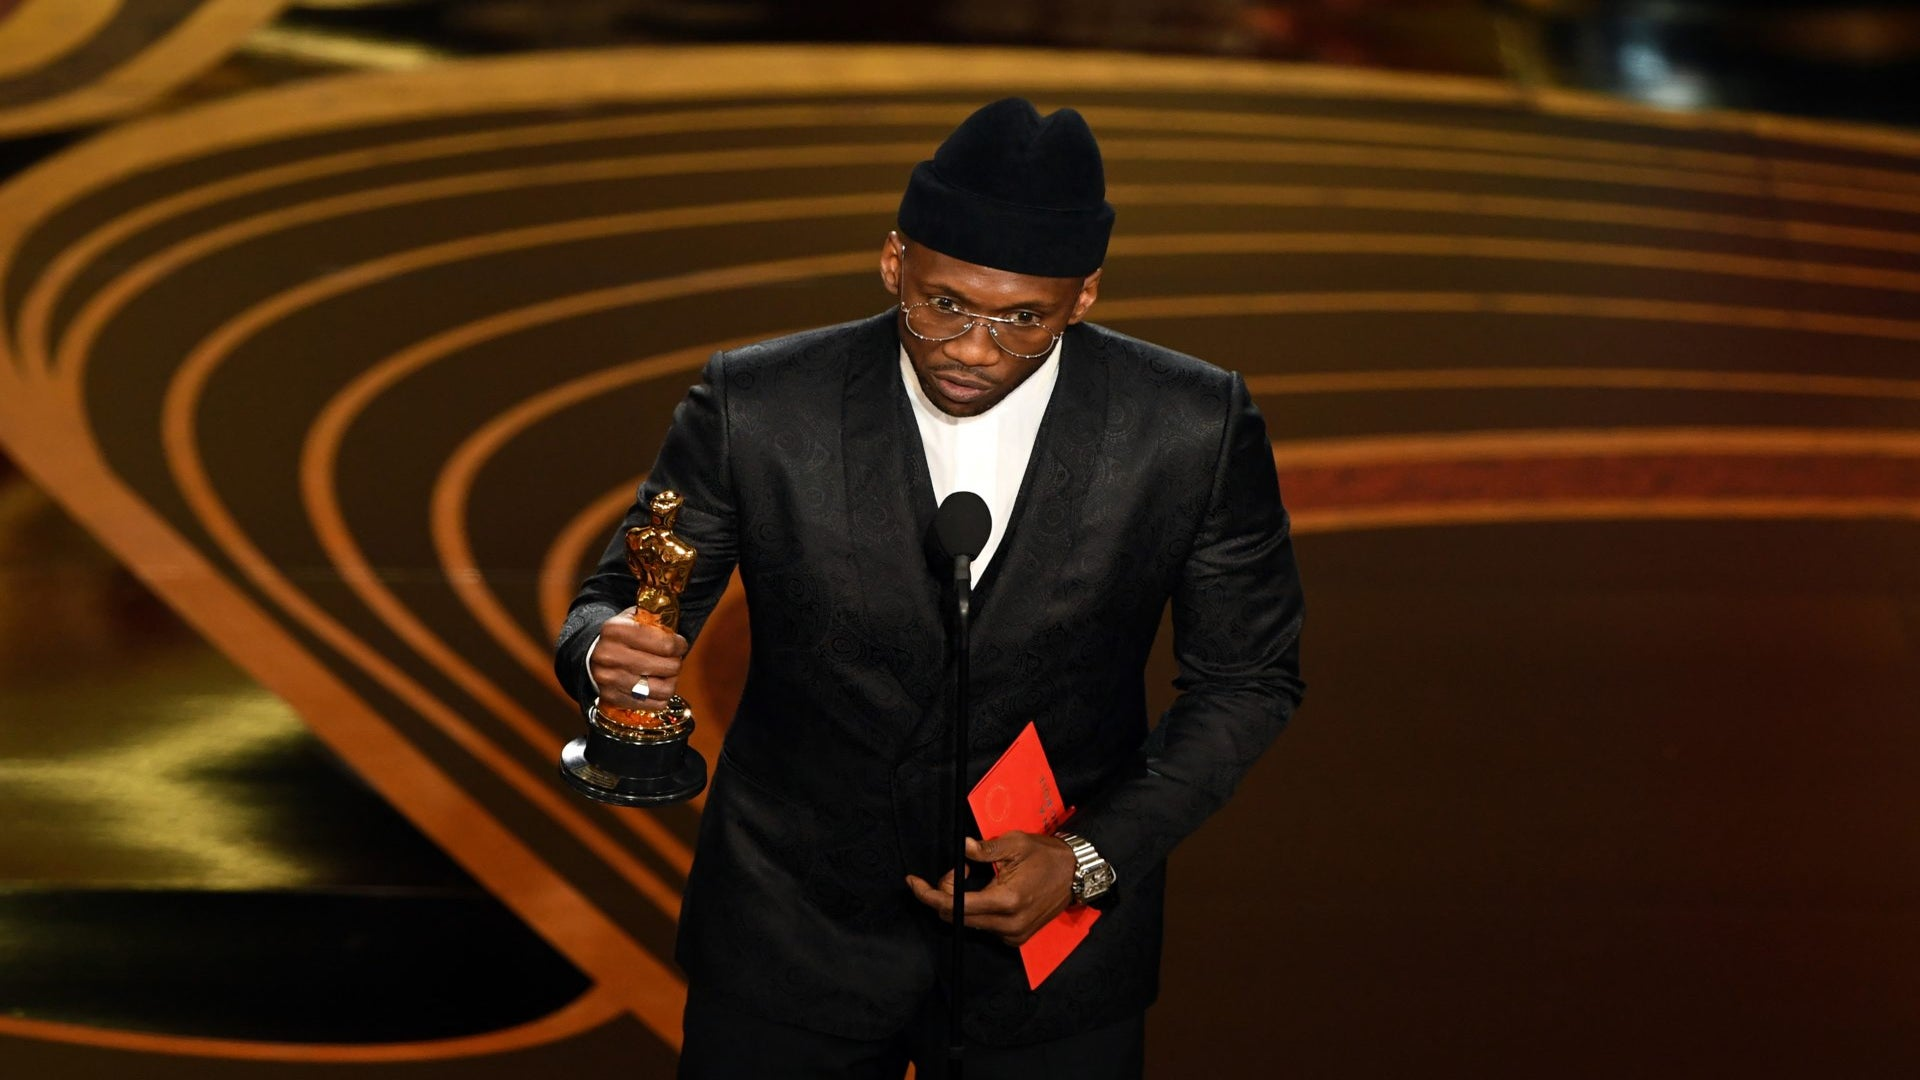 Mahershala Ali Is Now A Two-Time Academy Award Winner